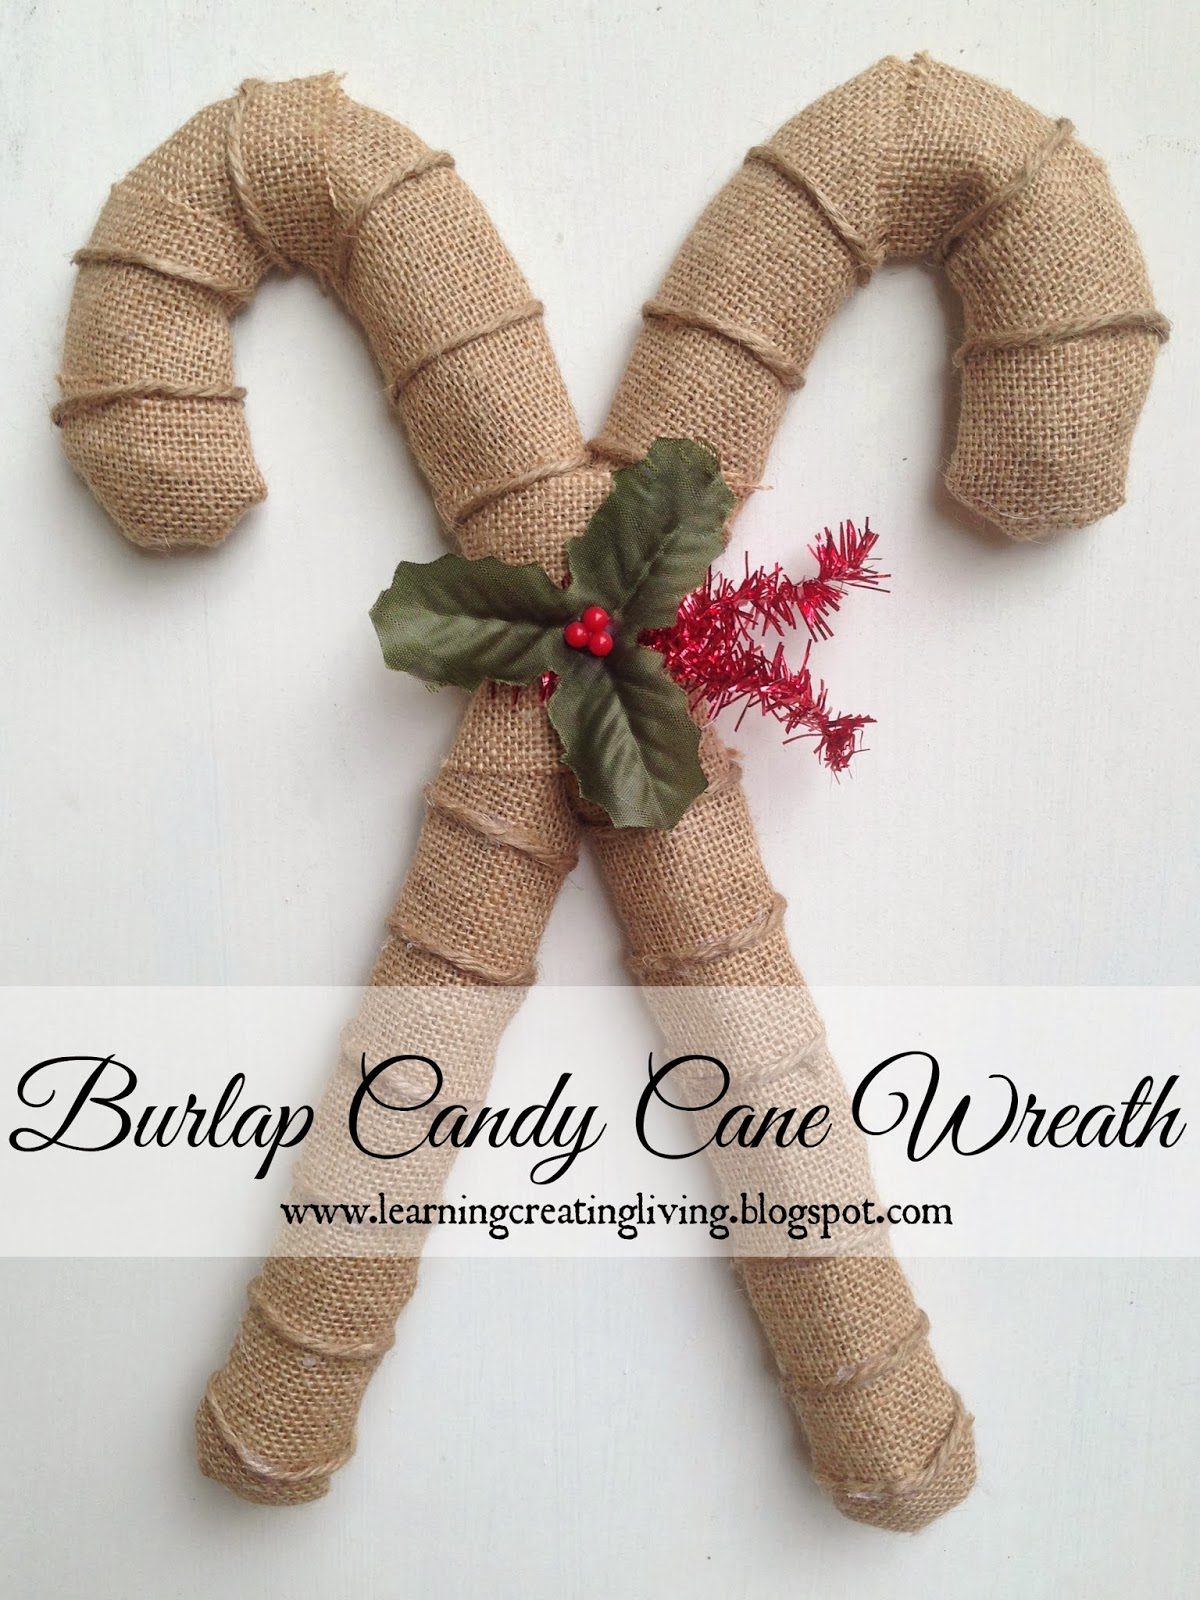 Burlap Candy Cane Wreath - Katelyn Chantel Blog